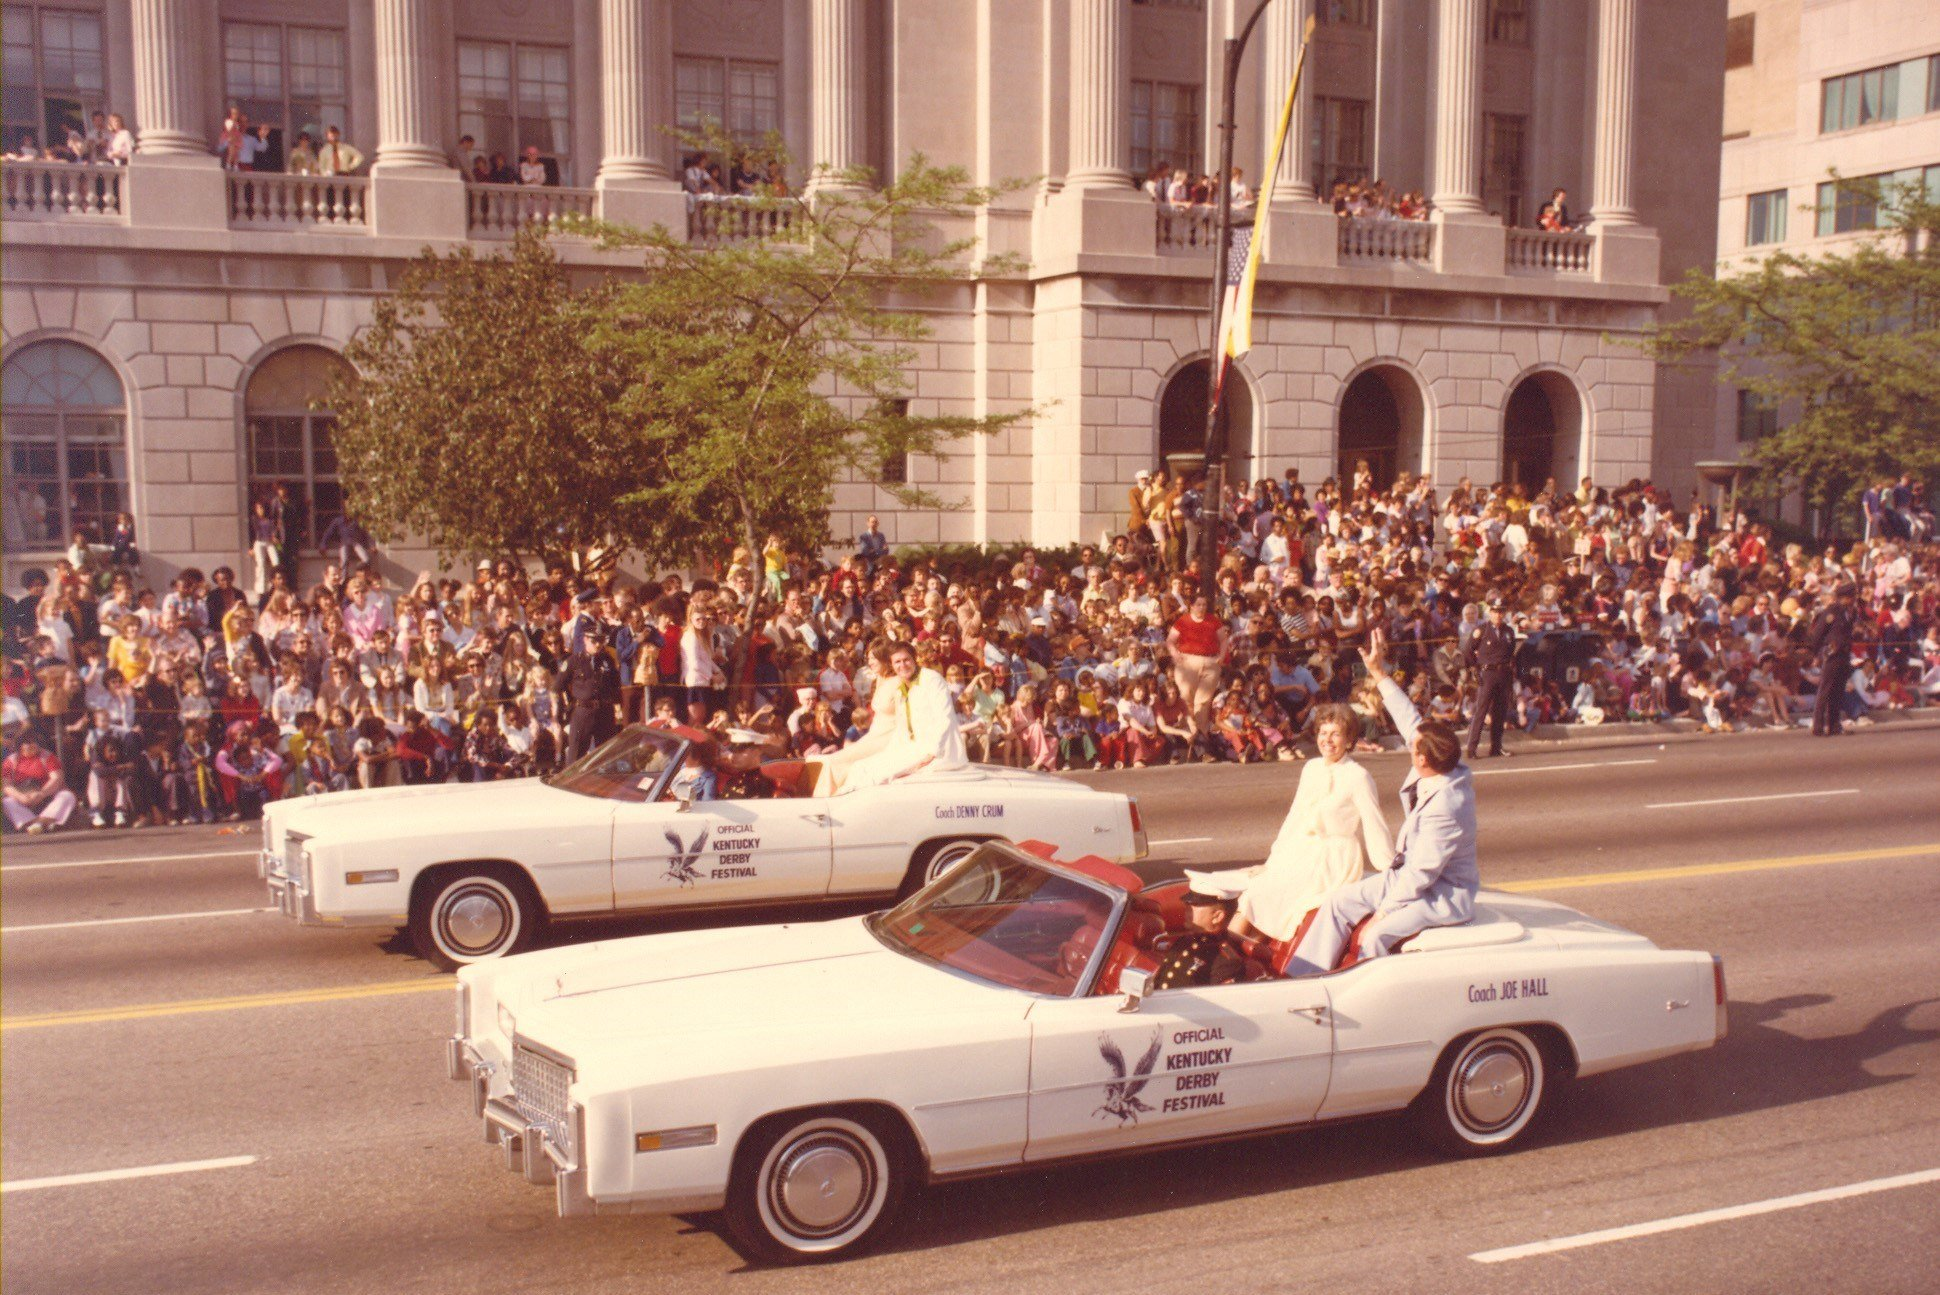 Joe B Hall and Denny Crum will be co-grand marshals for the Pegasus Parade just as they were in 1975.